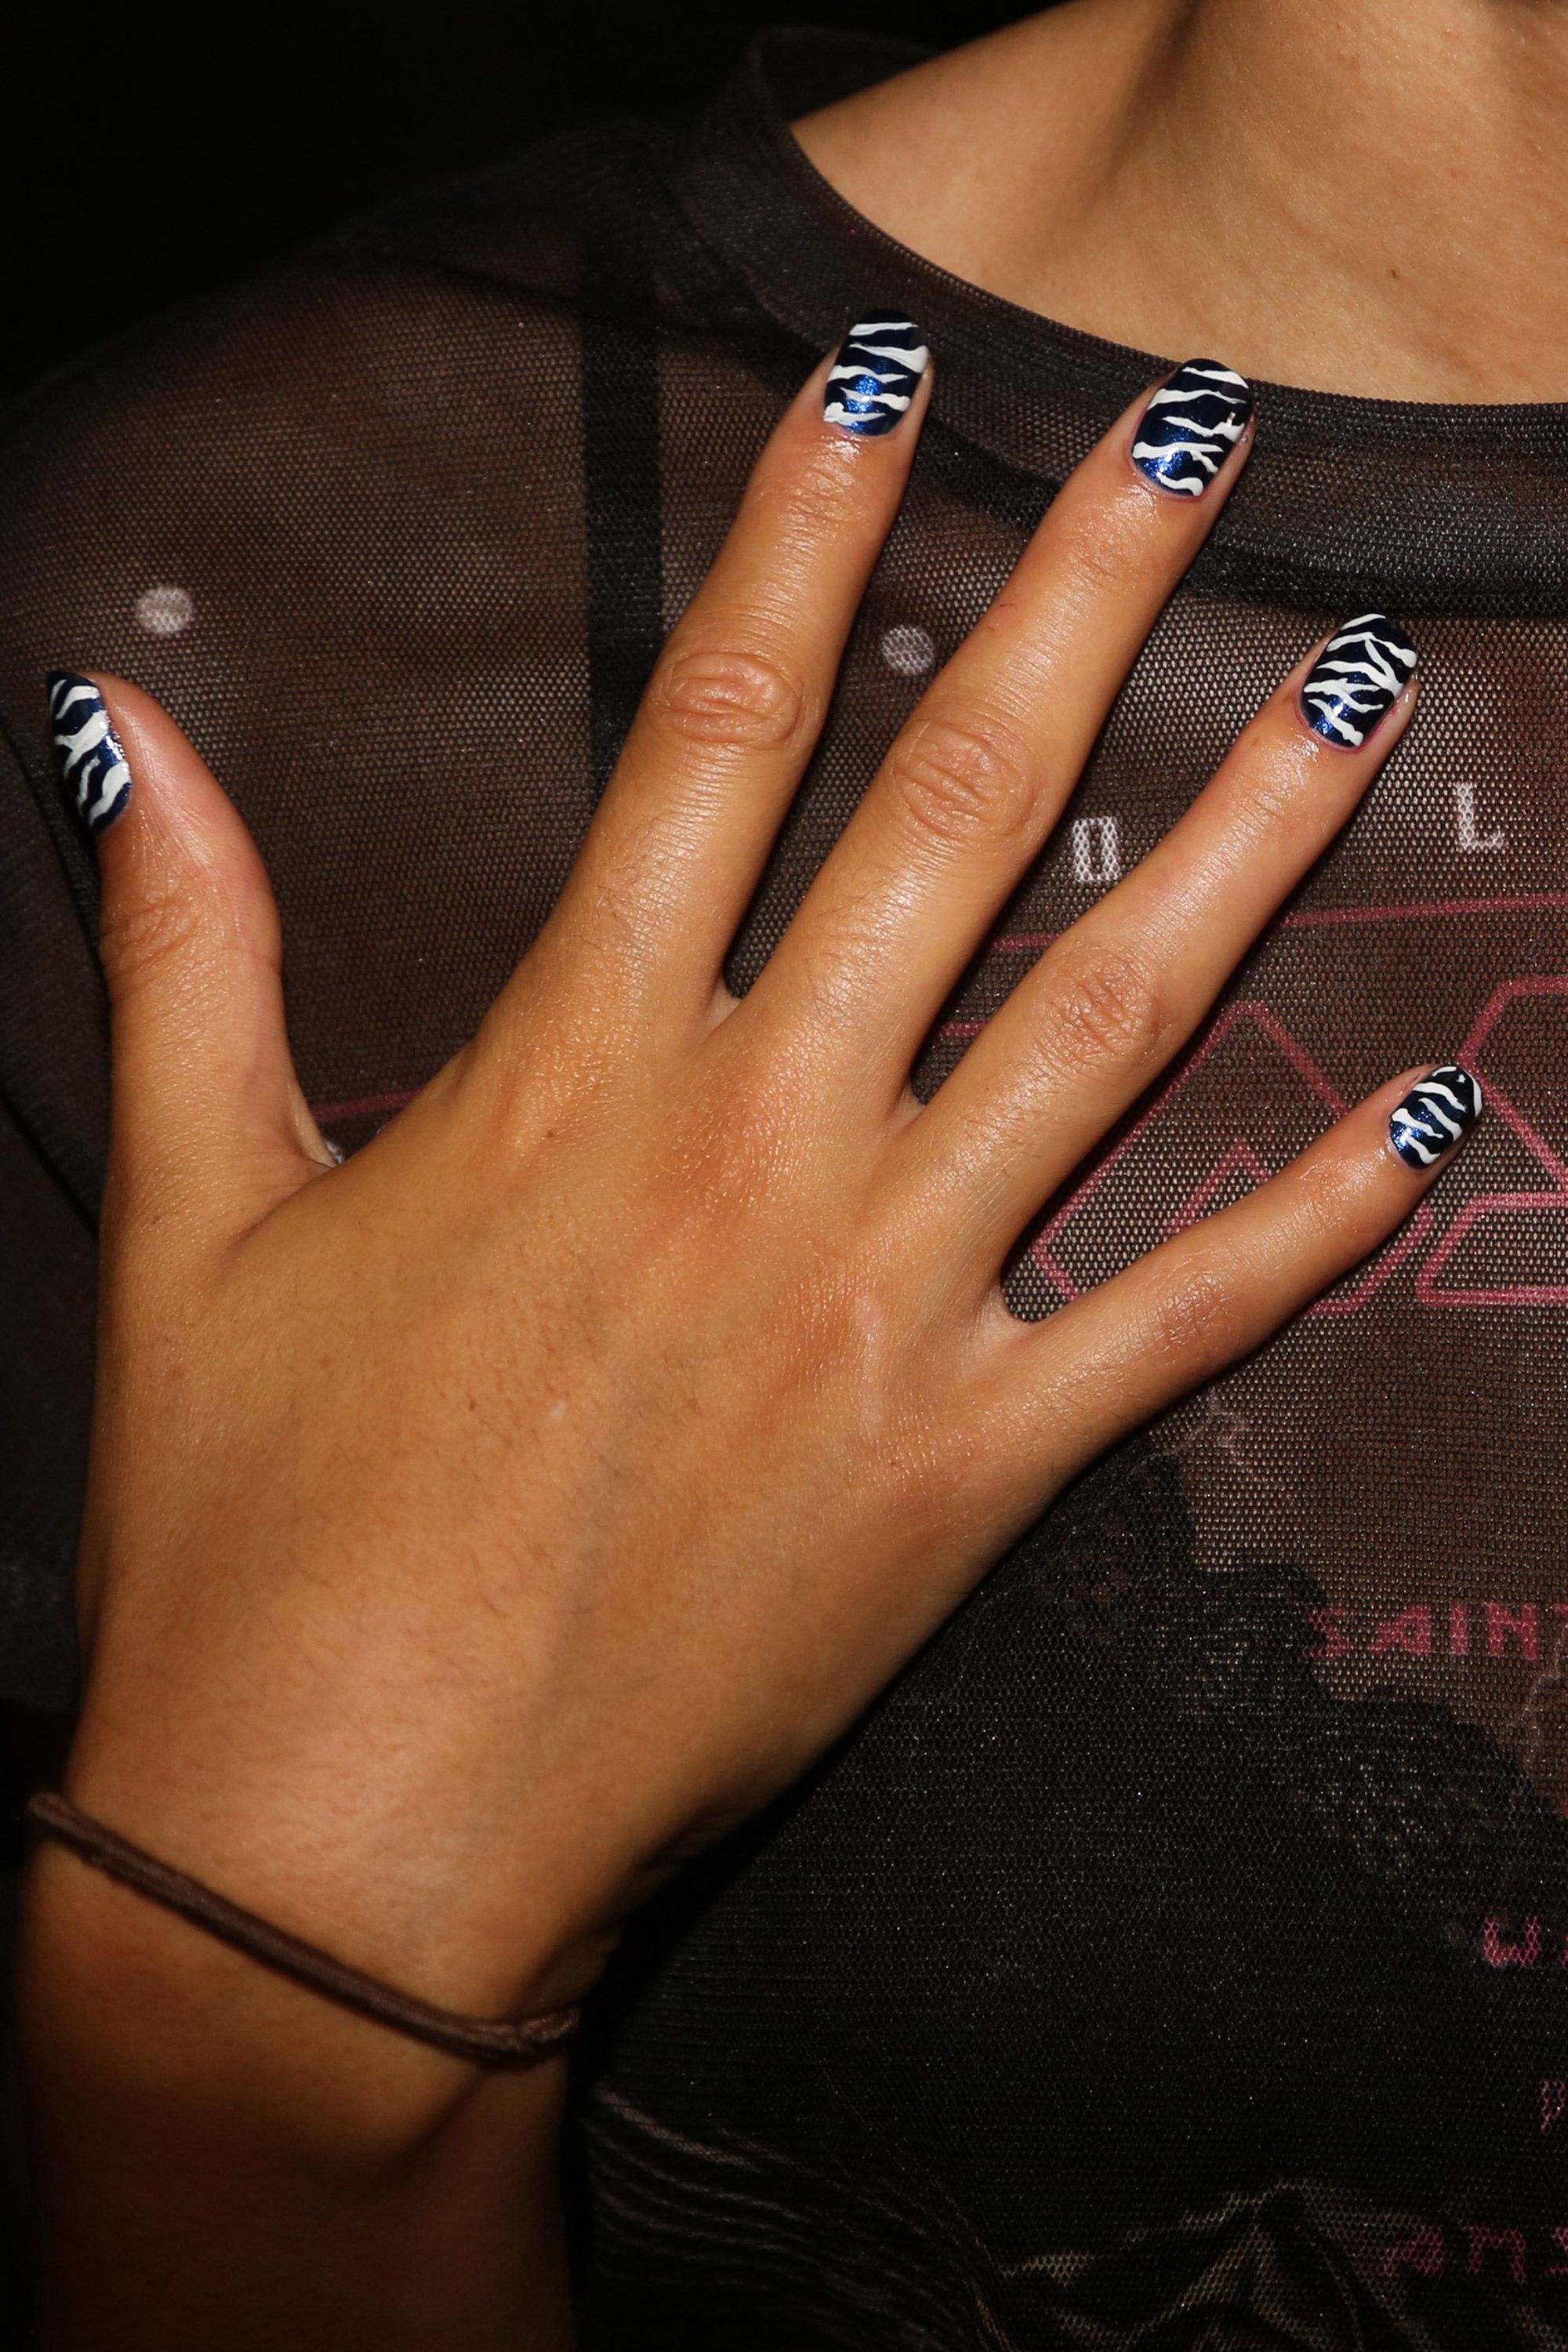 Springsummer 2018 nail trends nail trends from fashion week ss18 prinsesfo Gallery